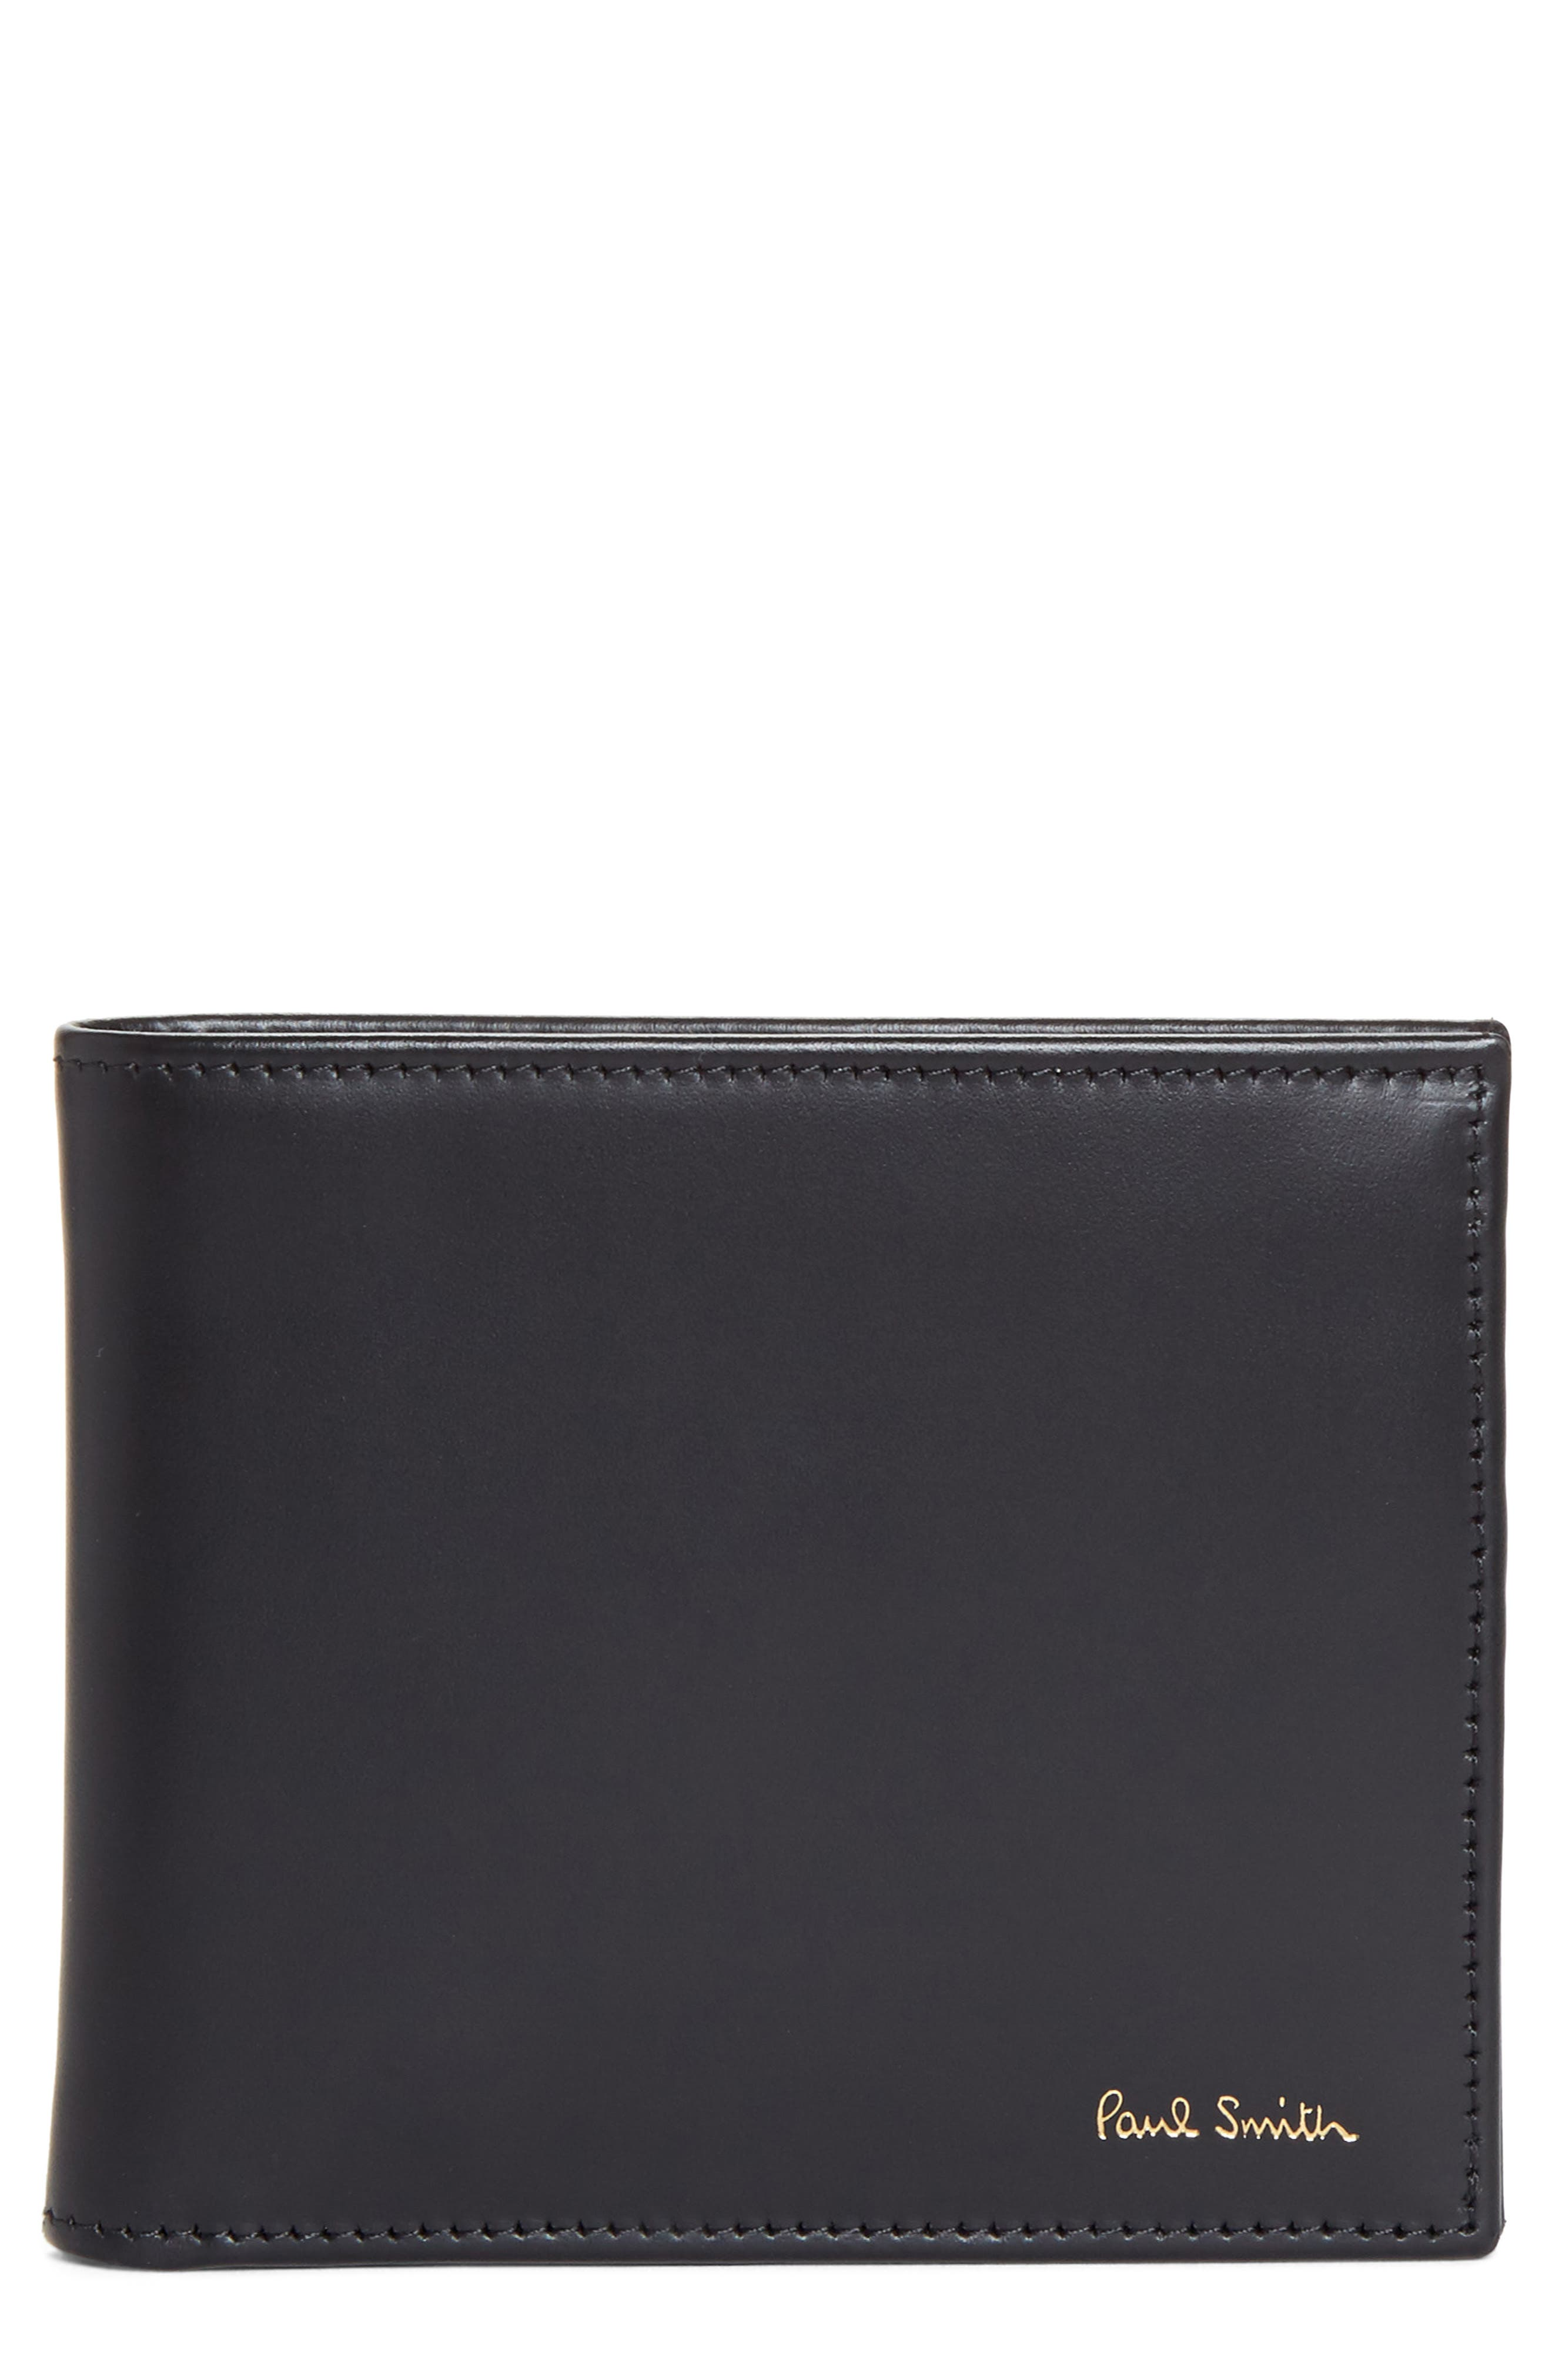 Main Image - Paul Smith Multistripe Leather Wallet